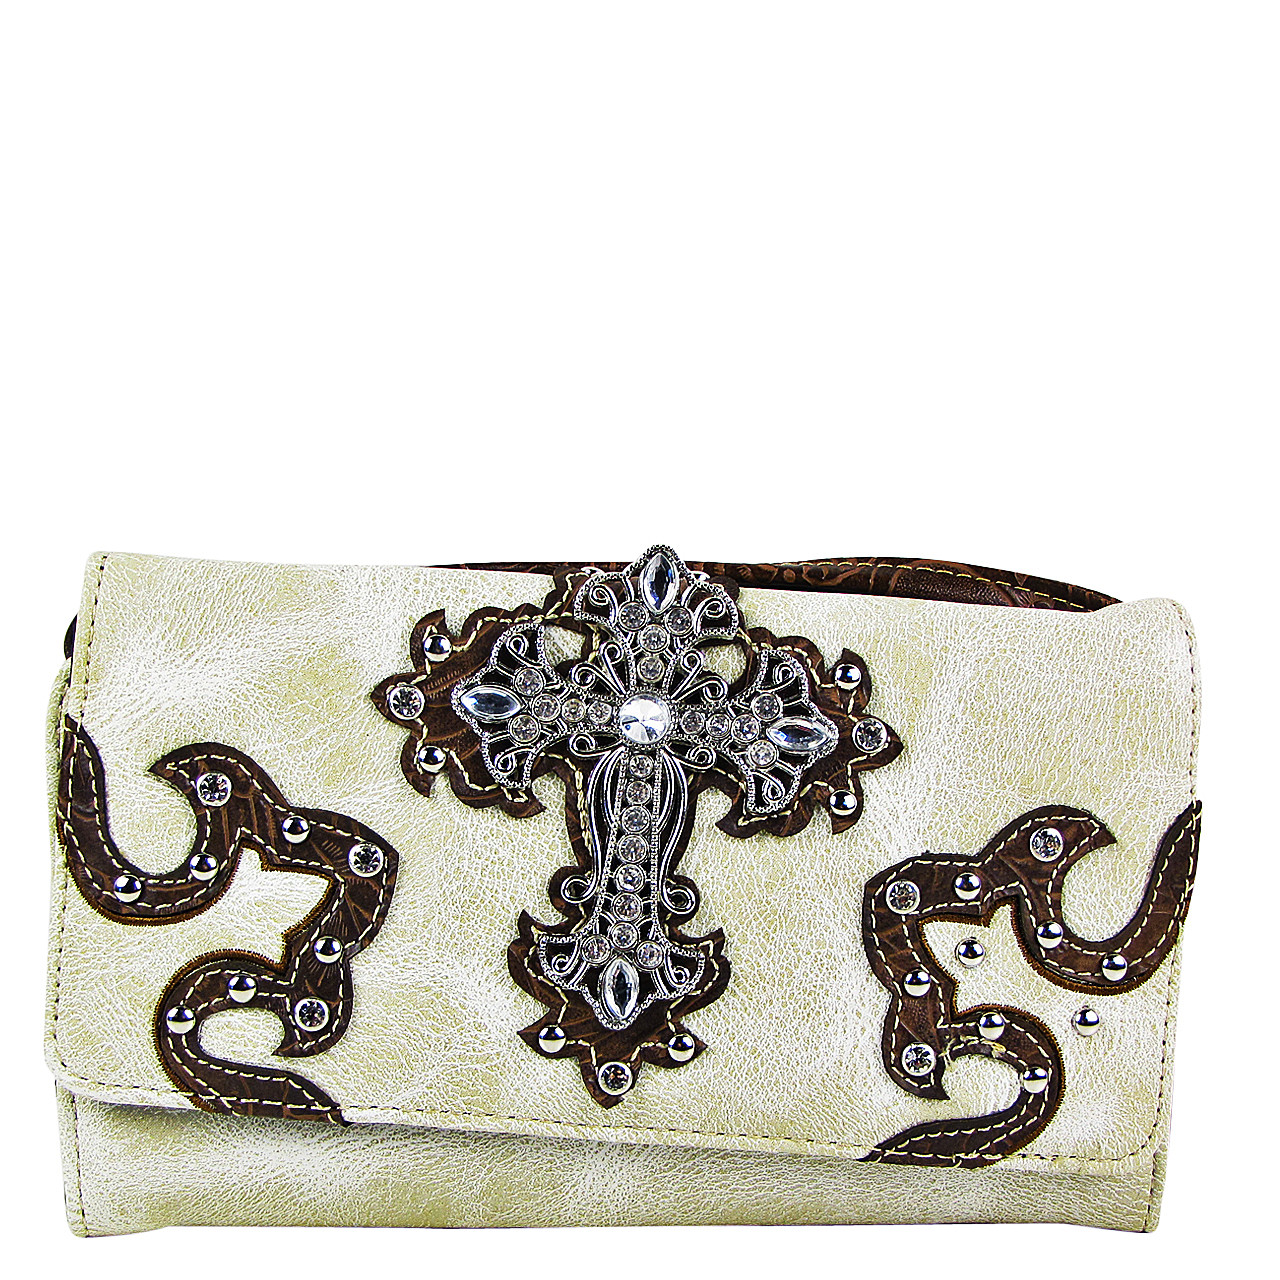 BEIGE RHINESTONE CROSS STITCHING LEATHERETTE LOOK CLUTCH TRIFOLD WALLET CW1-0478BEI